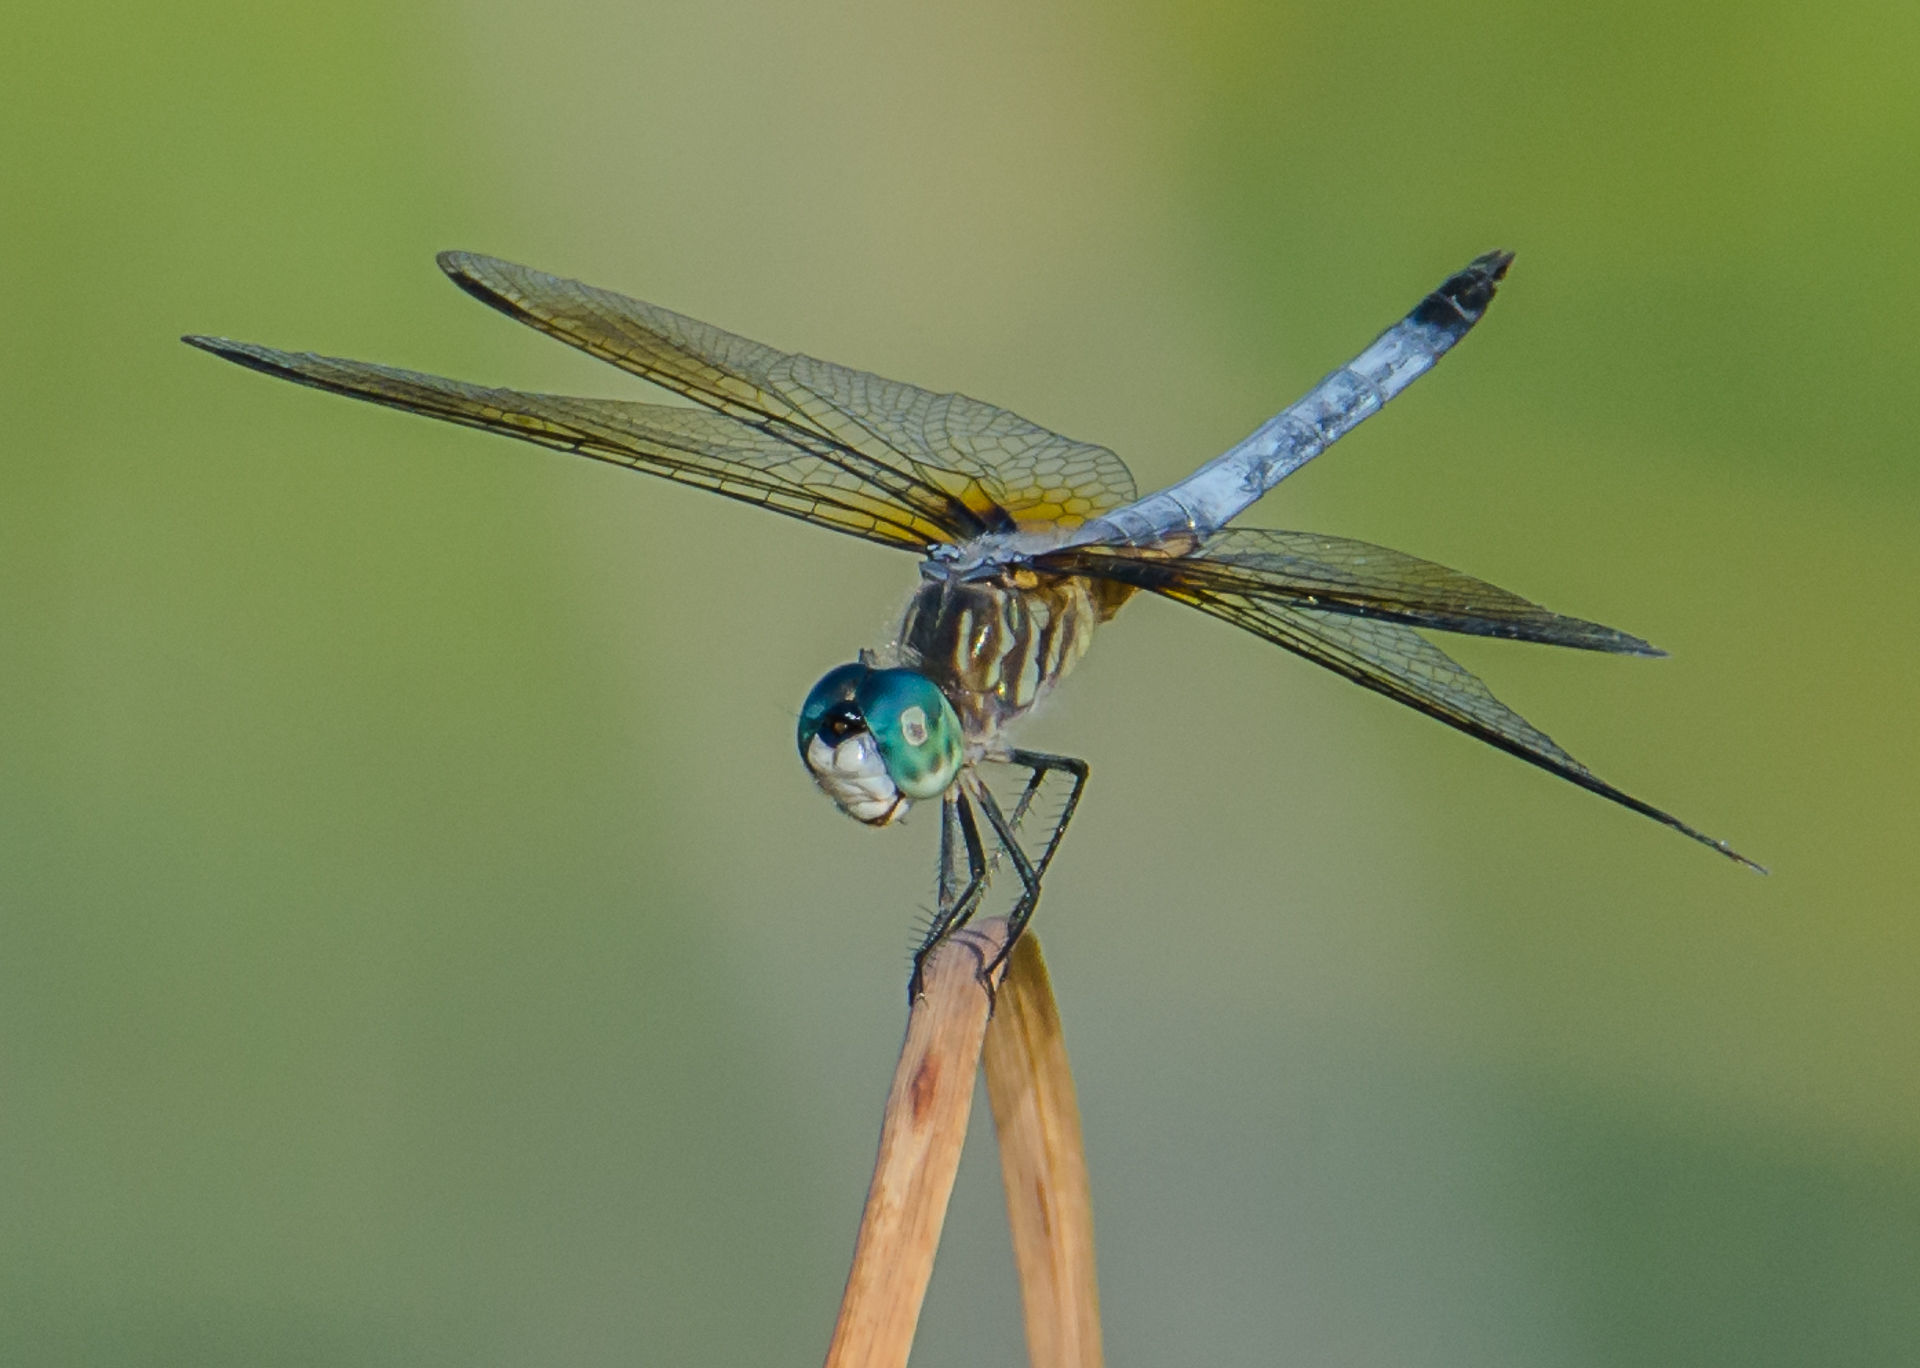 Eastern Pondhawk - Digital (Shallow Depth of Field) - Name Withheld Per Request